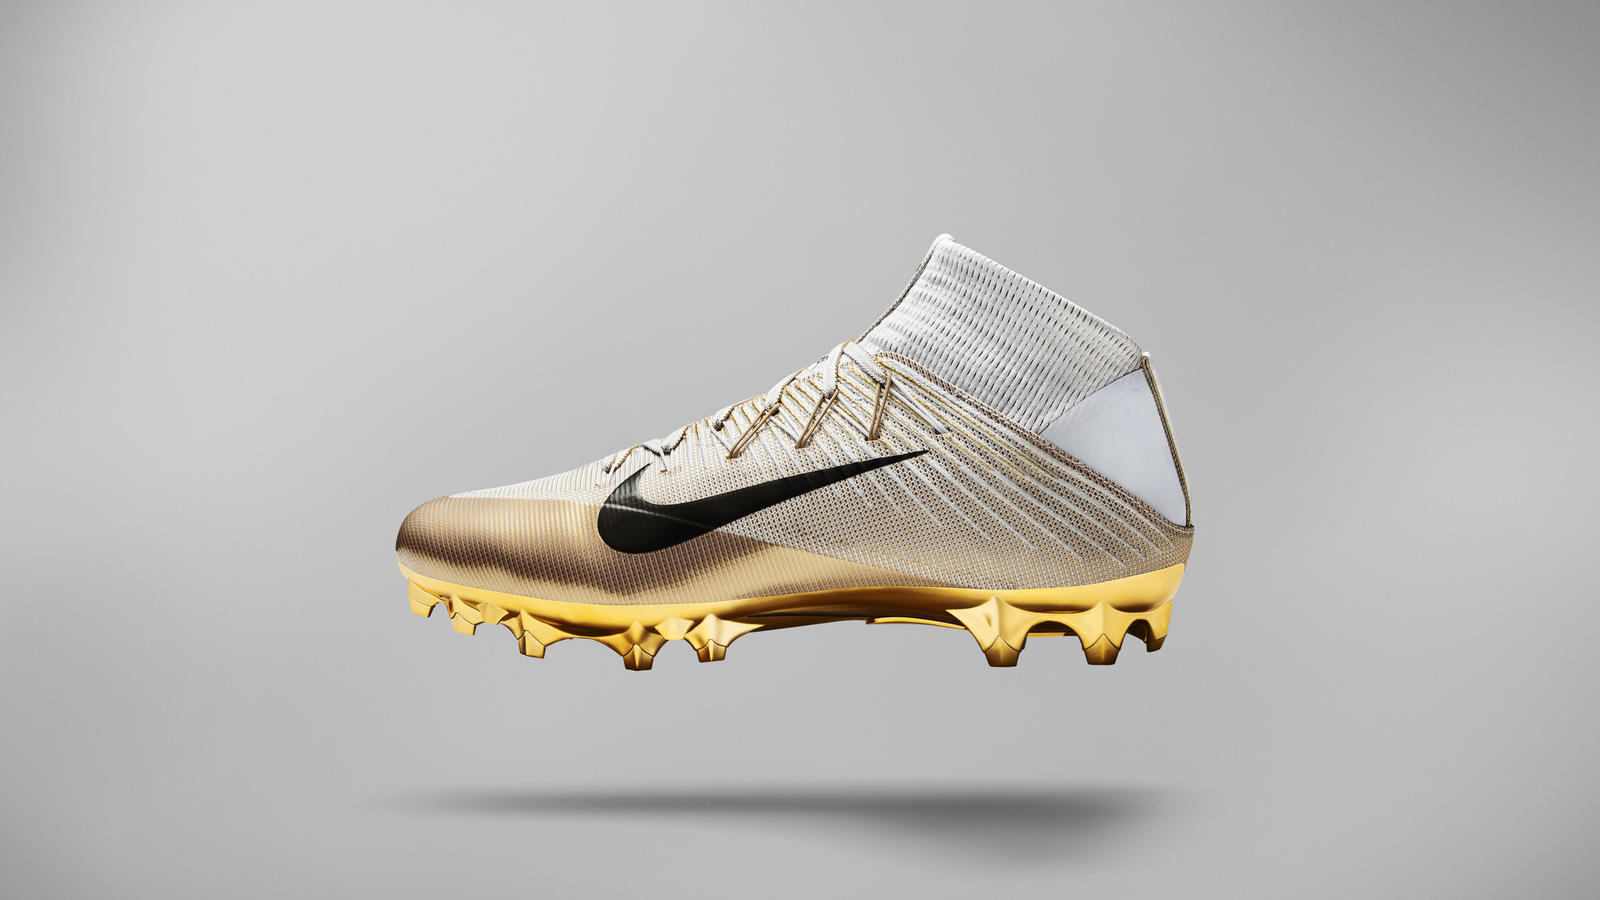 Ho15 Nfb Vapor Untouchable Cleat Na Lat 1 824470 107